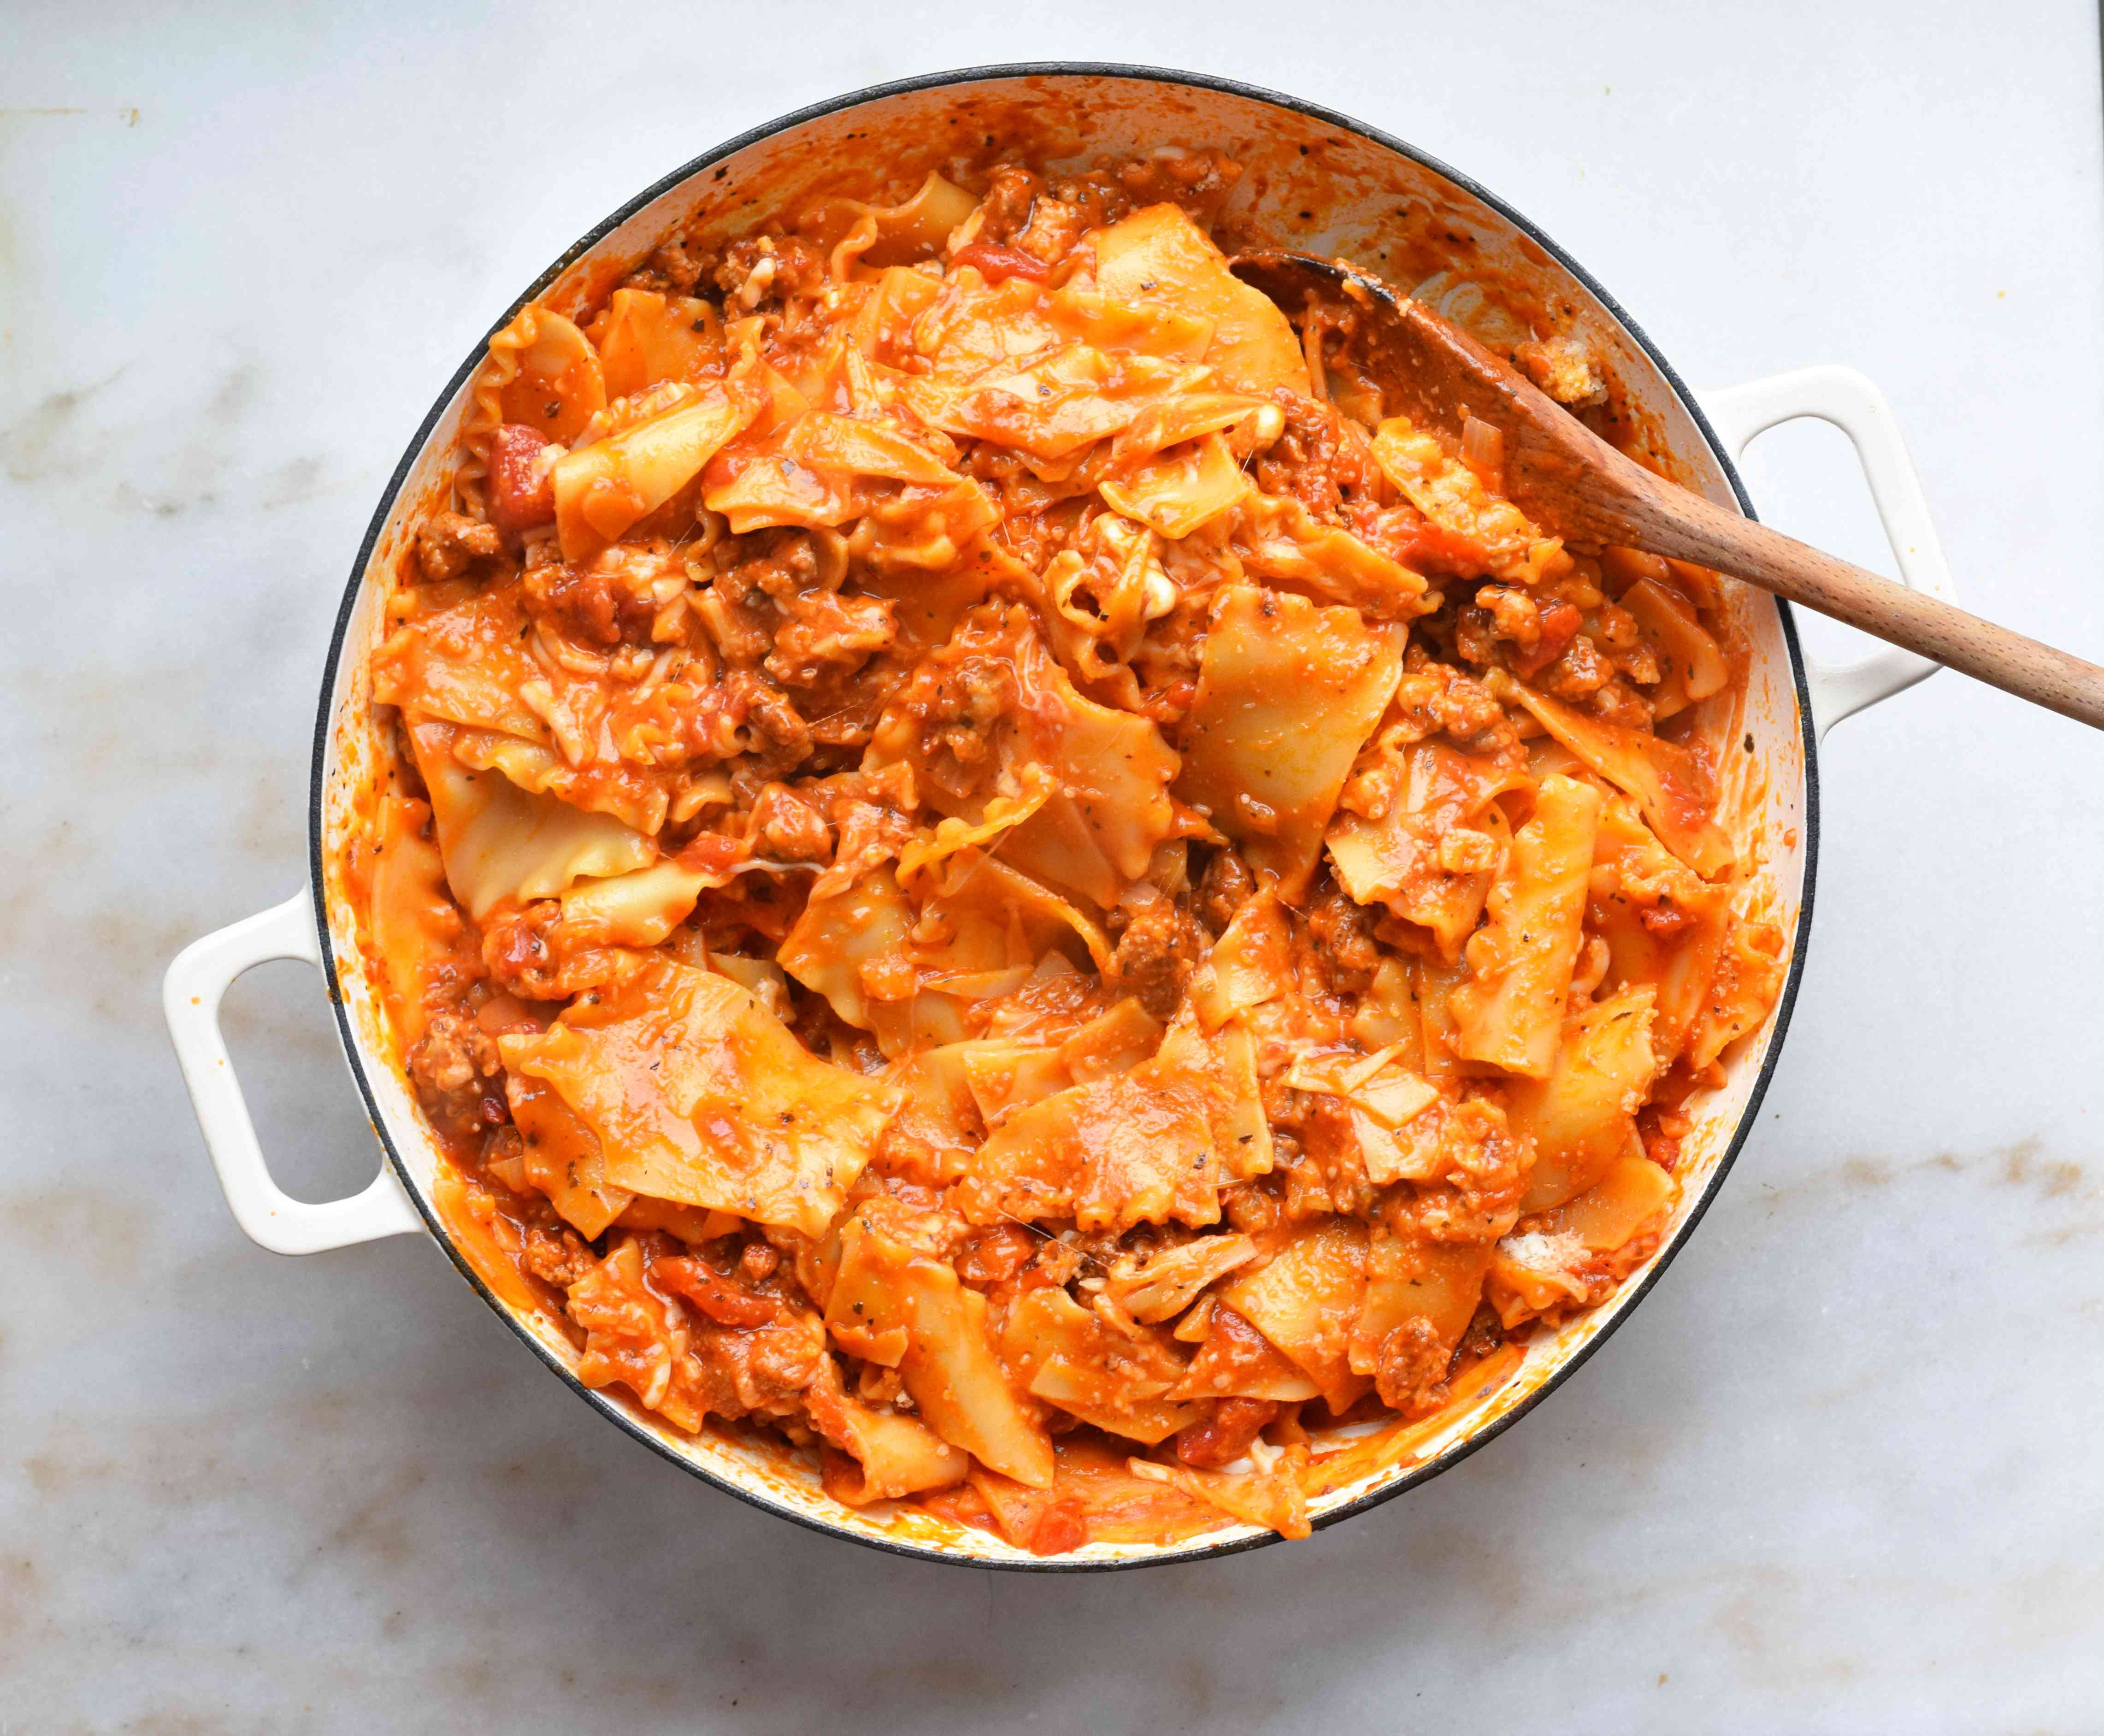 cheese mixed with lasagna noodles and sauce in a skillet